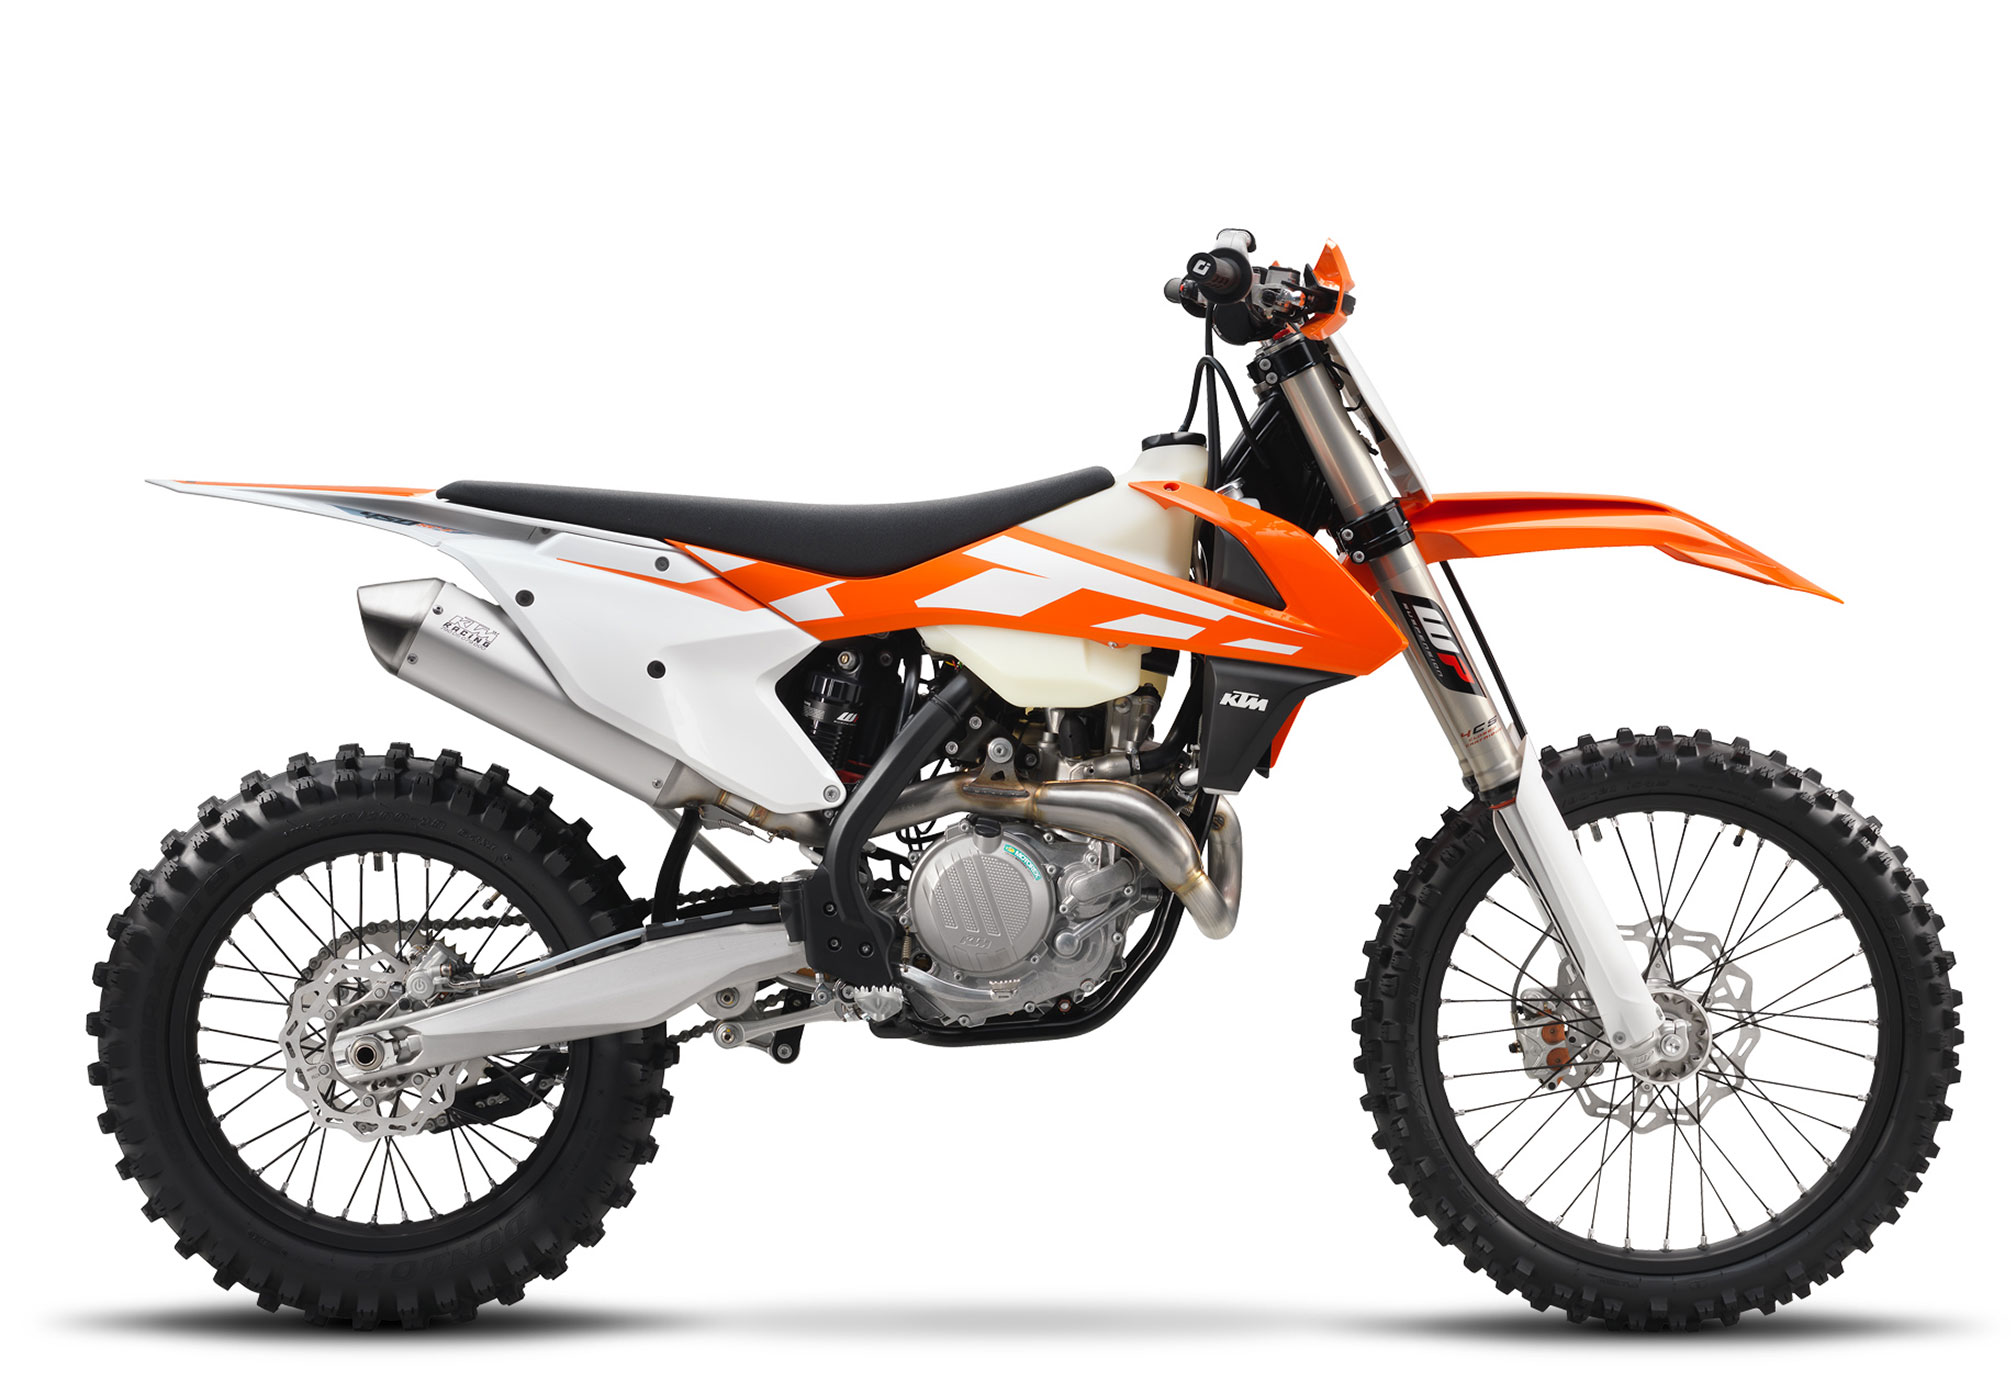 2020 KTM 450 SX-F Guide • Total Motorcycle